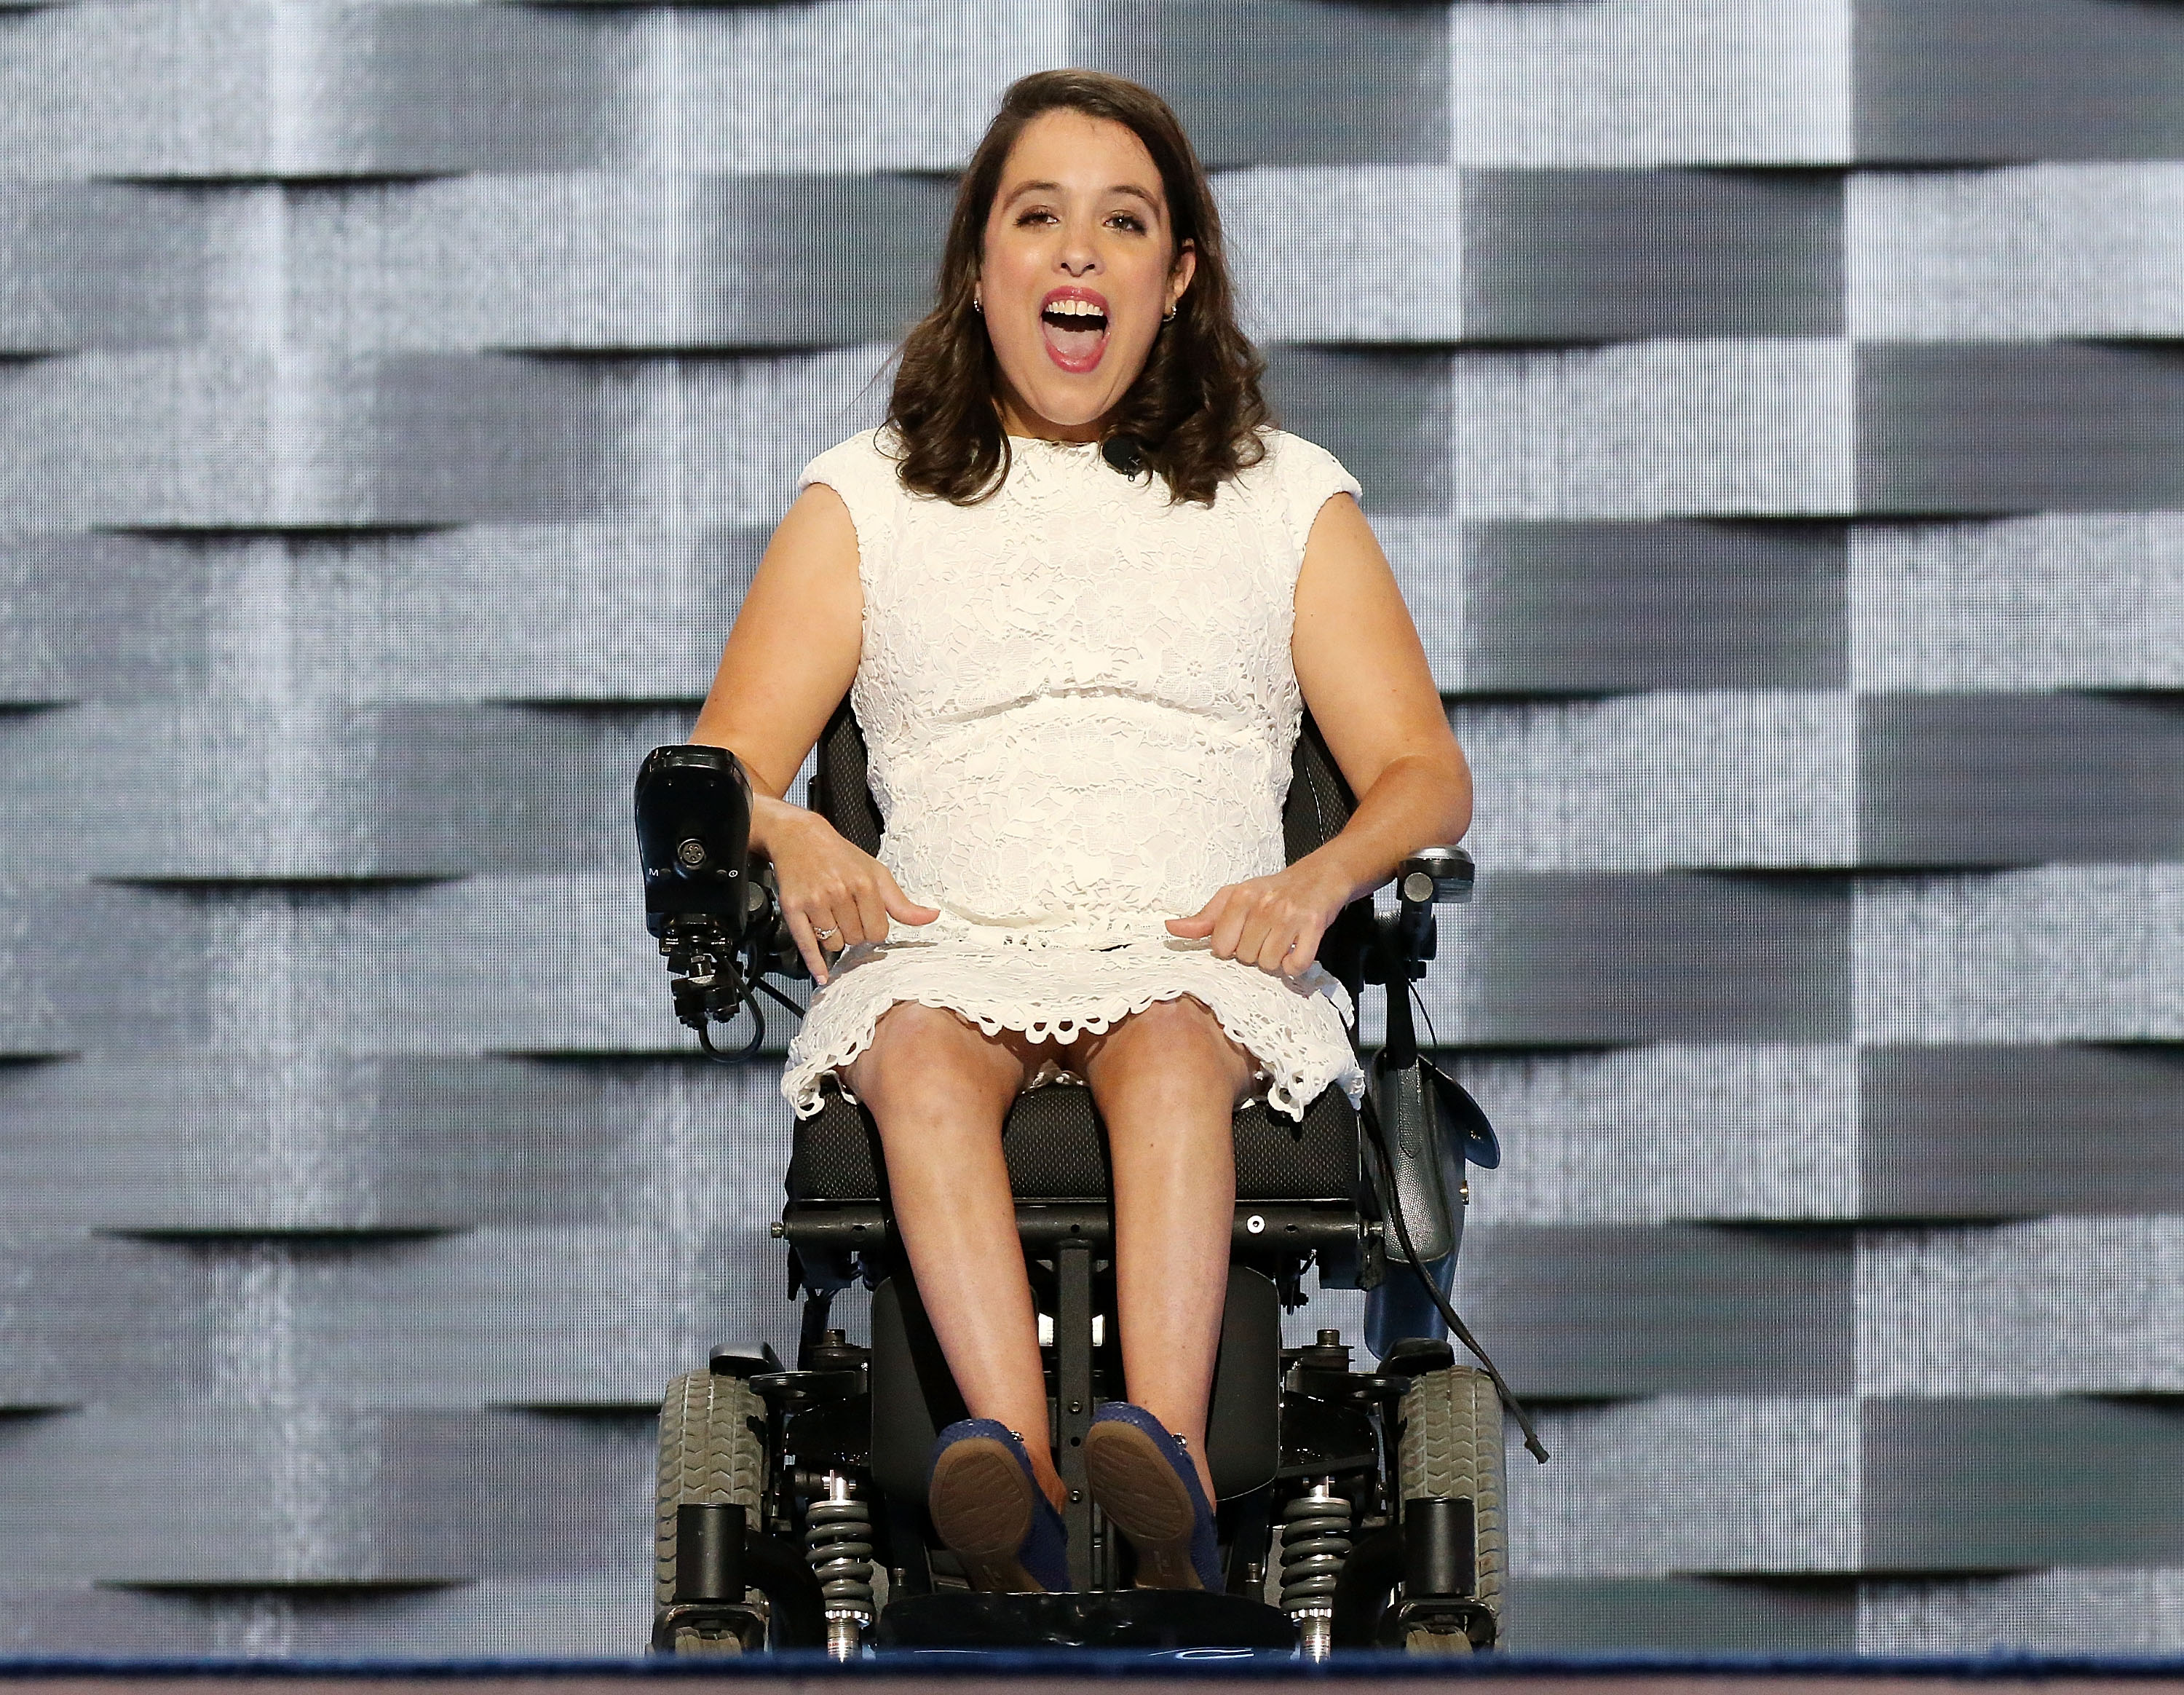 Anastasia Somoza, a disability rights advocate, speaks on the first day of the Democratic National Convention. She is sitting in a wheelchair.